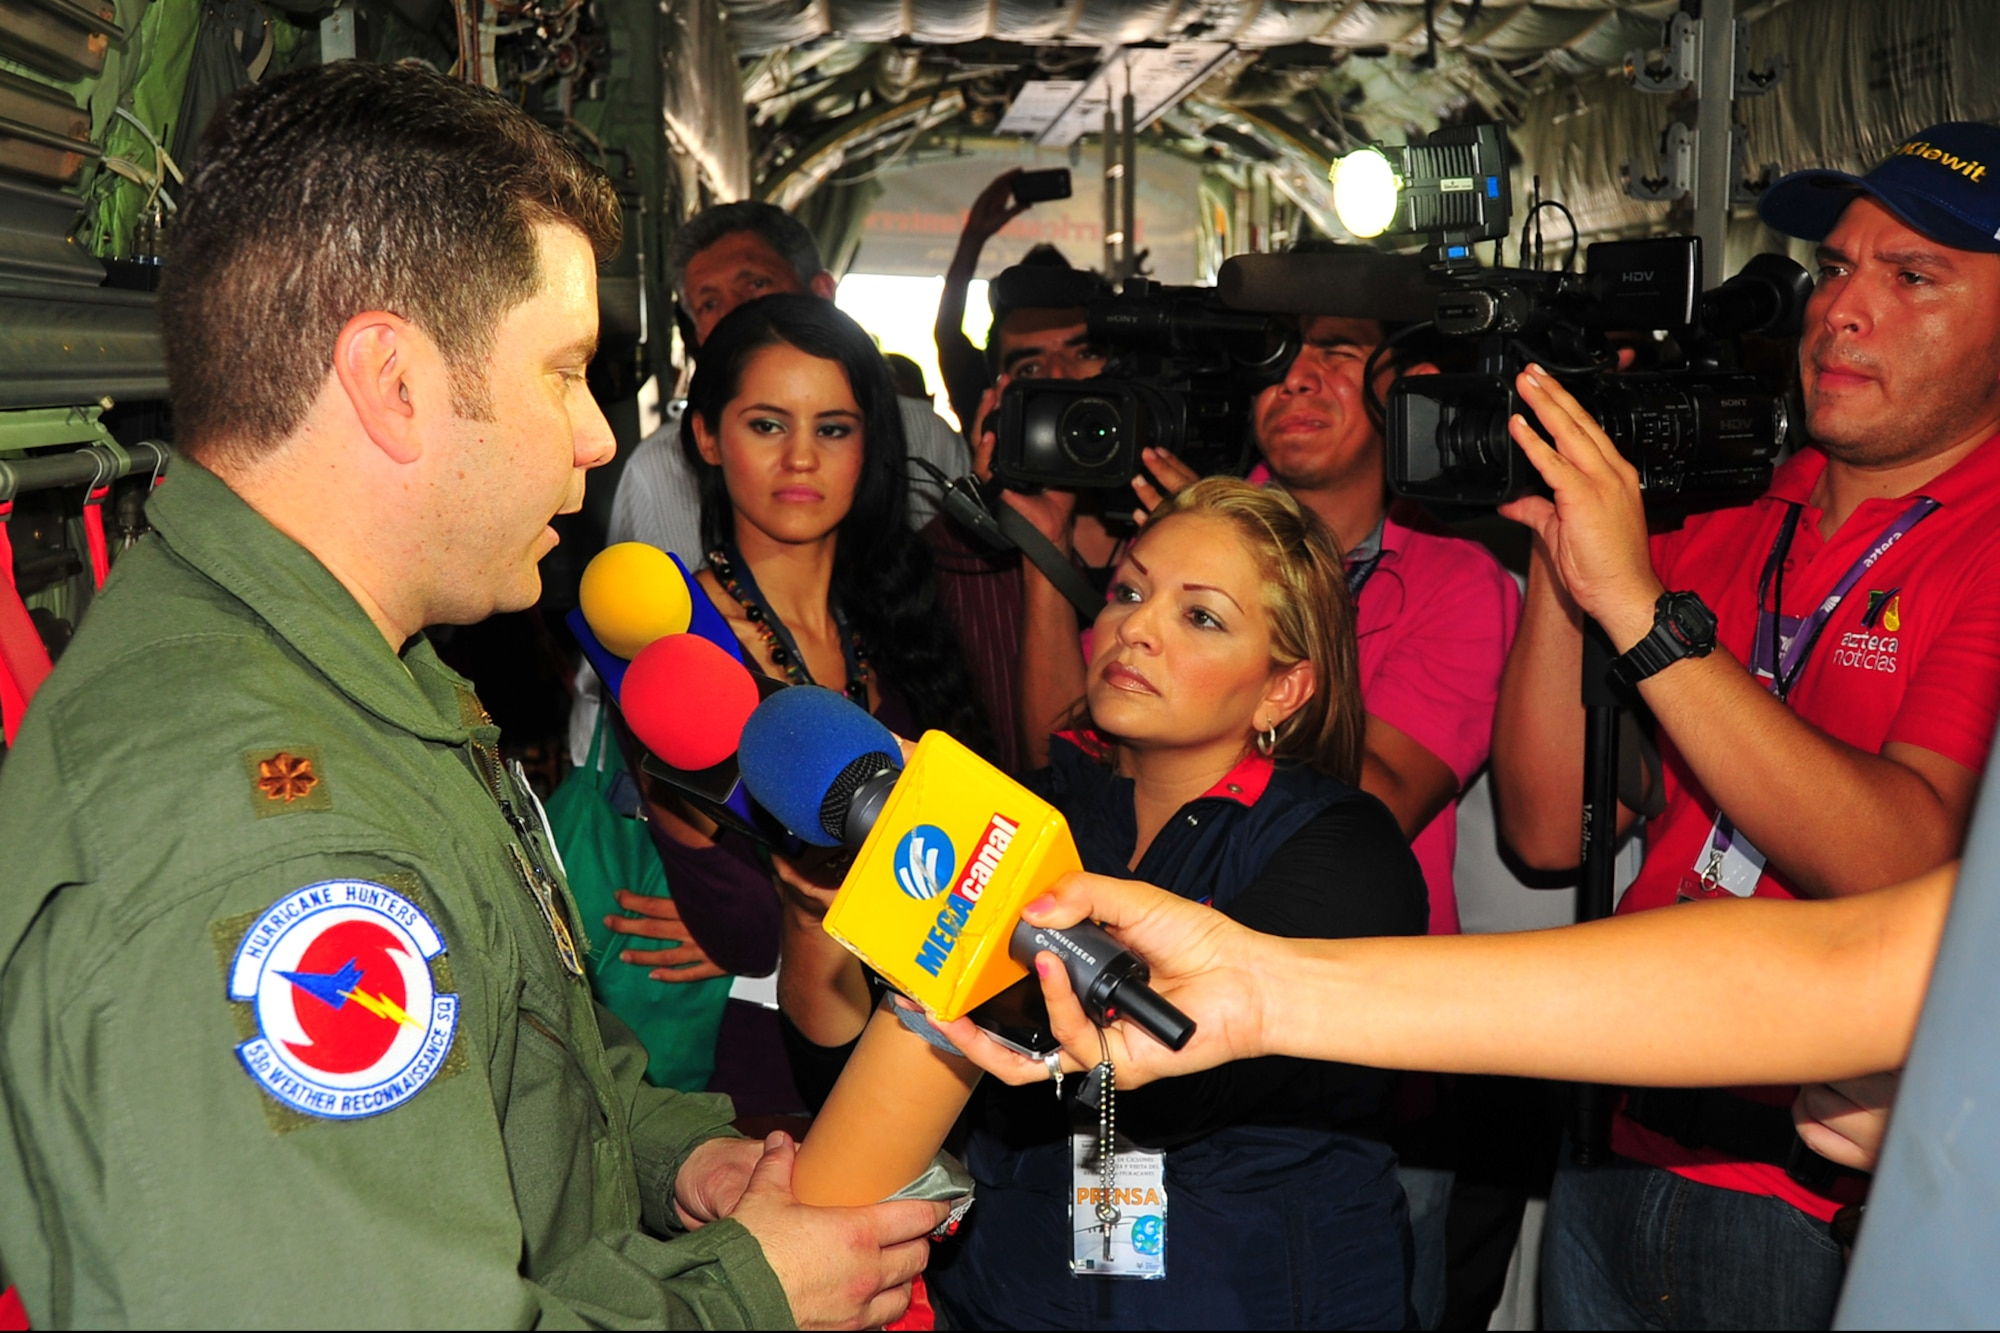 Maj. Rafael Salort participates in a Mexican media interview during the Caribbean hurricane awareness tour, or CHAT, May 5, 2014 at Manzanillo International Airport, Mexico. CHAT is a joint effort between National Oceanic and Atmospheric Administration's national hurricane center and the 403rd Wing's 53rd Weather Reconnaissance Squadron. The tour promotes hurricane awareness and preparedness throughout the Caribbean region. Salort is a 53rd Weather Reconnaissance Squadron navigator. (U.S. Air Force photo/Maj. Marnee A.C. Losurdo)